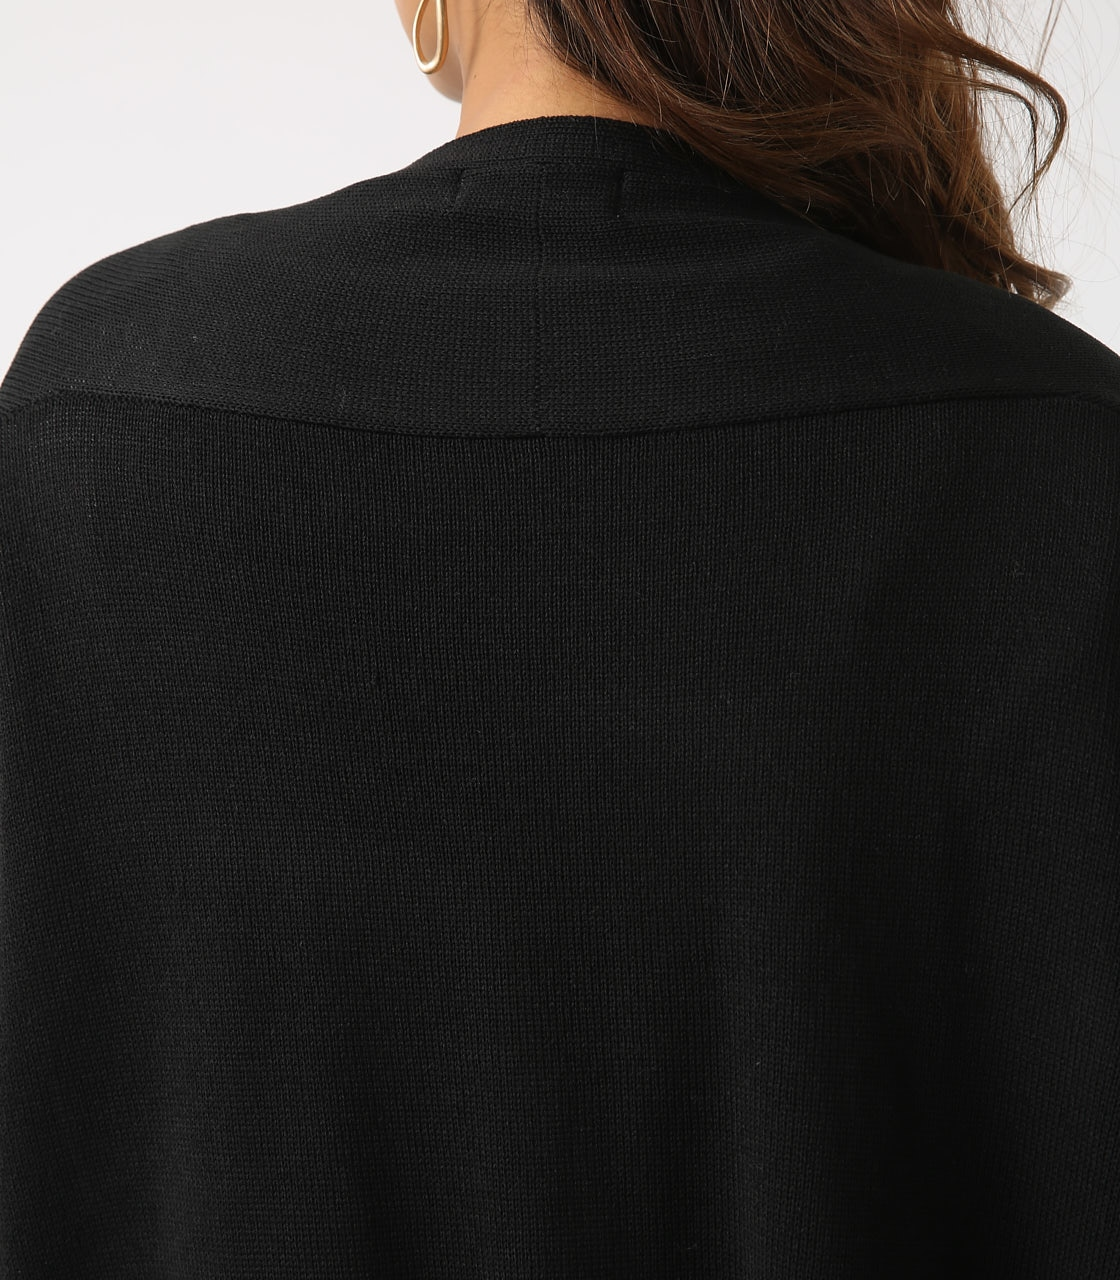 SHEER KNIT CARDIGAN 詳細画像 BLK 9